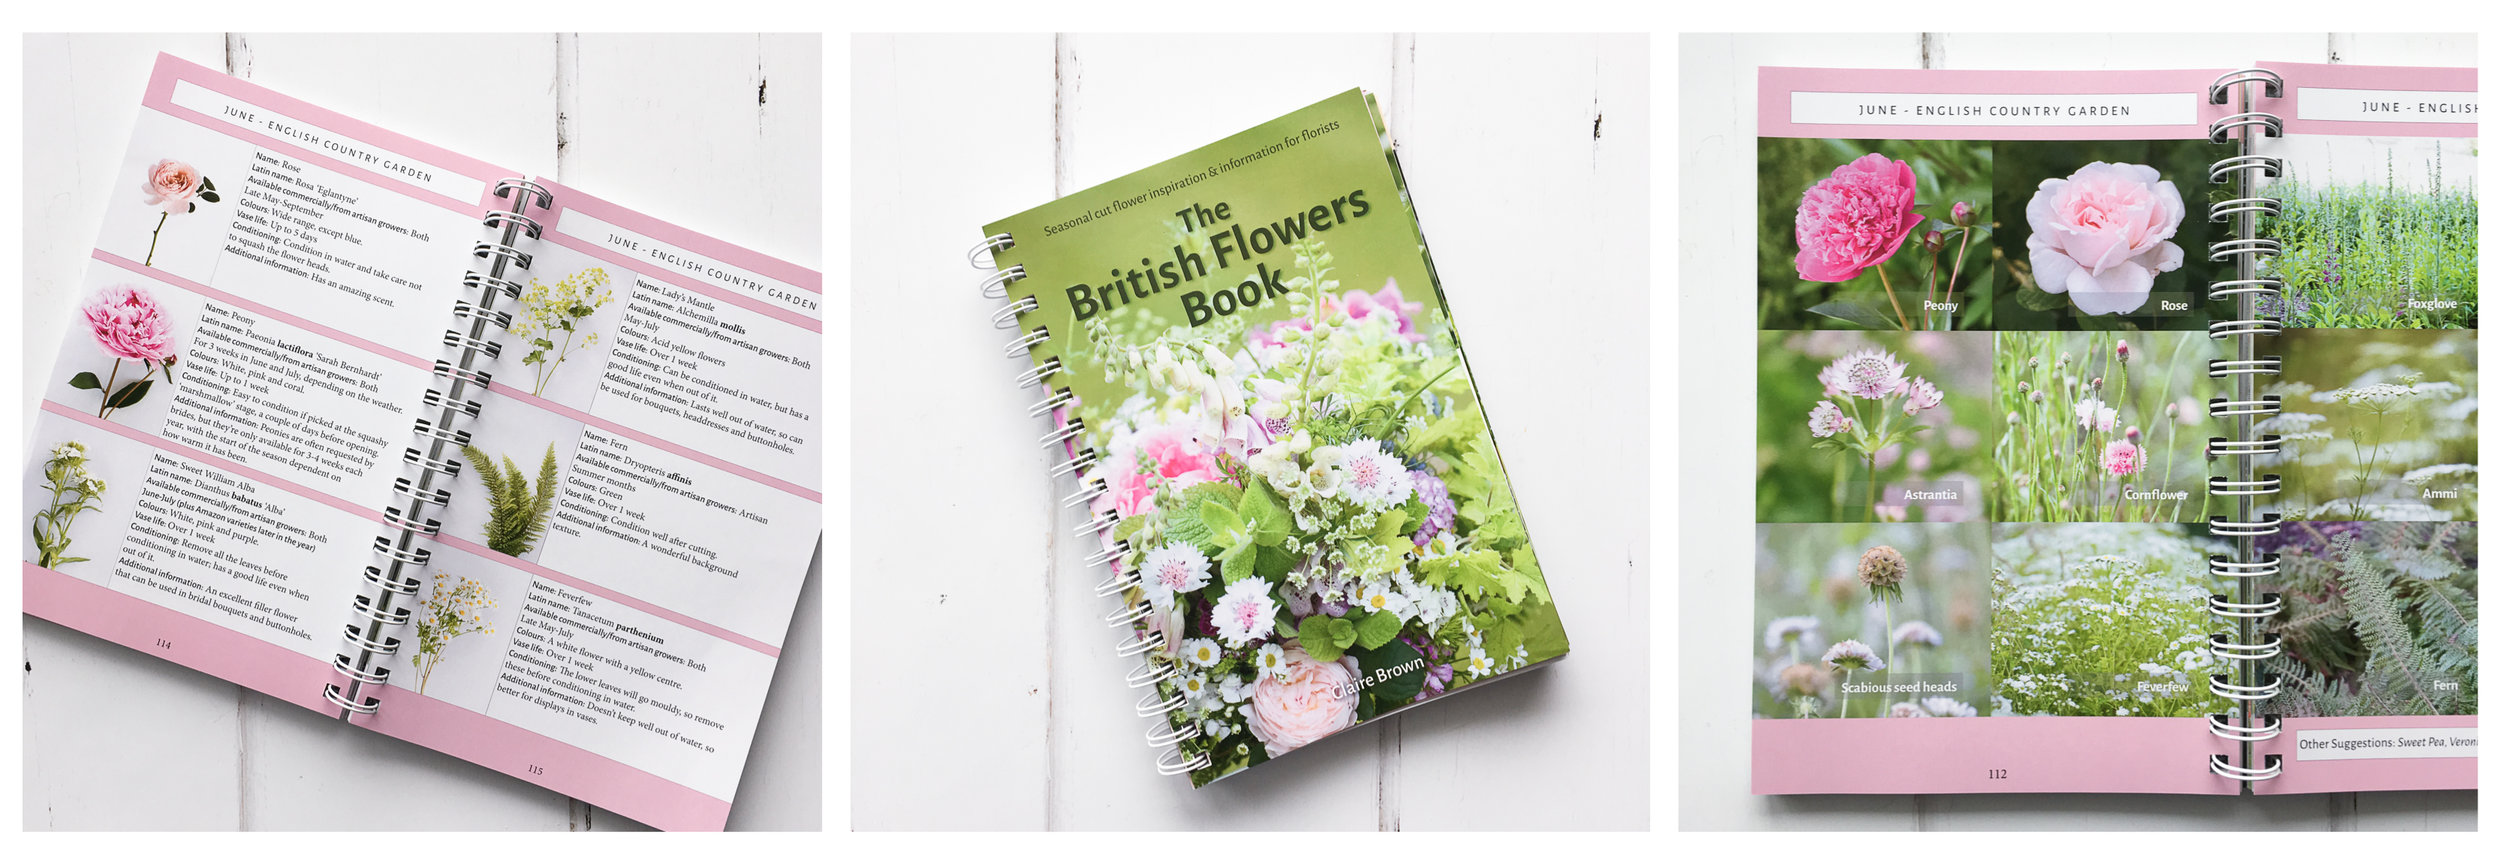 british flowers book.jpg